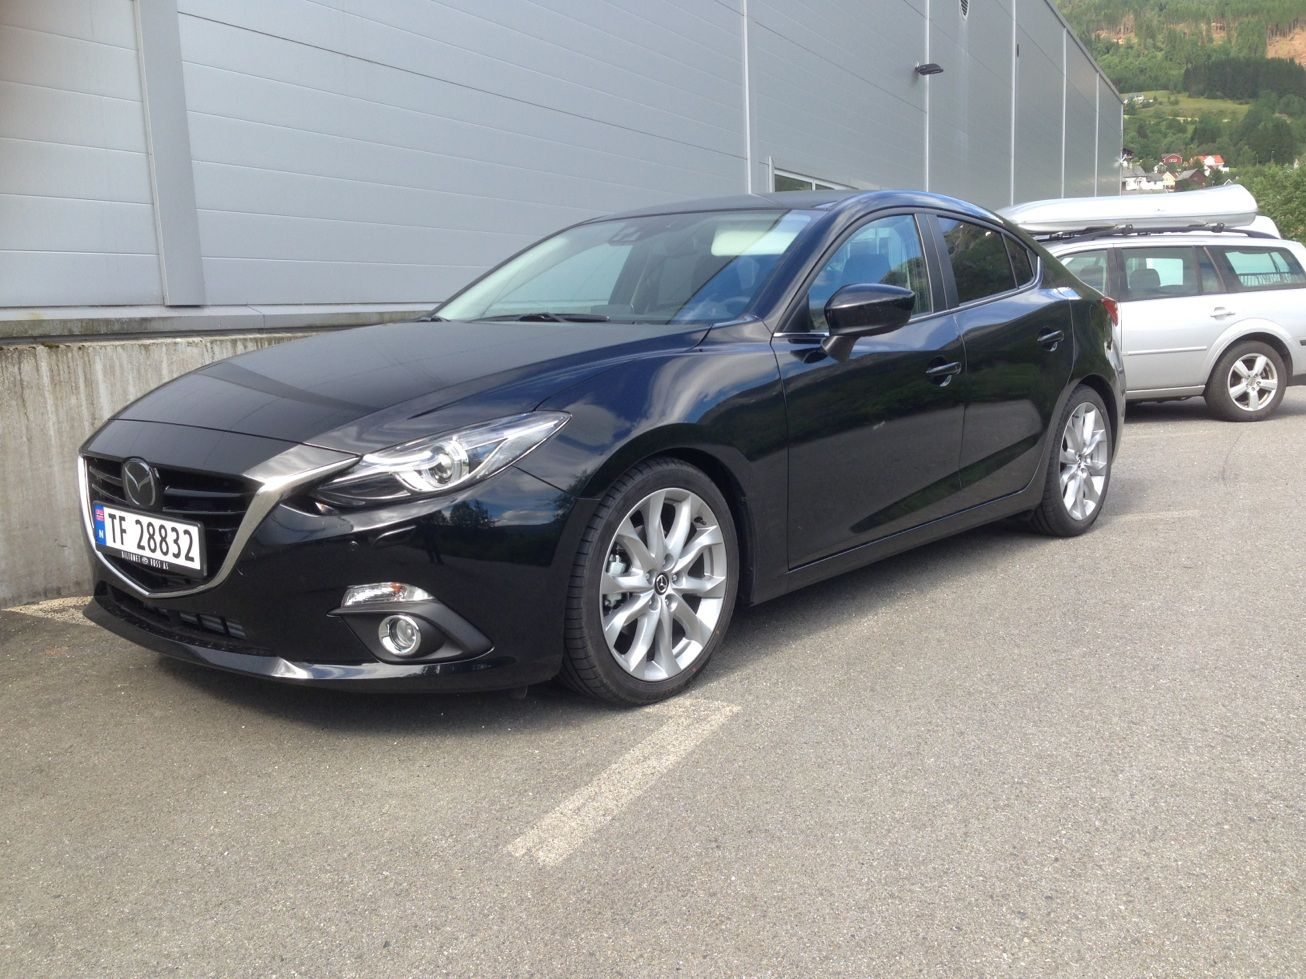 lowering kit and rims for 2014 mazda3 page 5. Black Bedroom Furniture Sets. Home Design Ideas